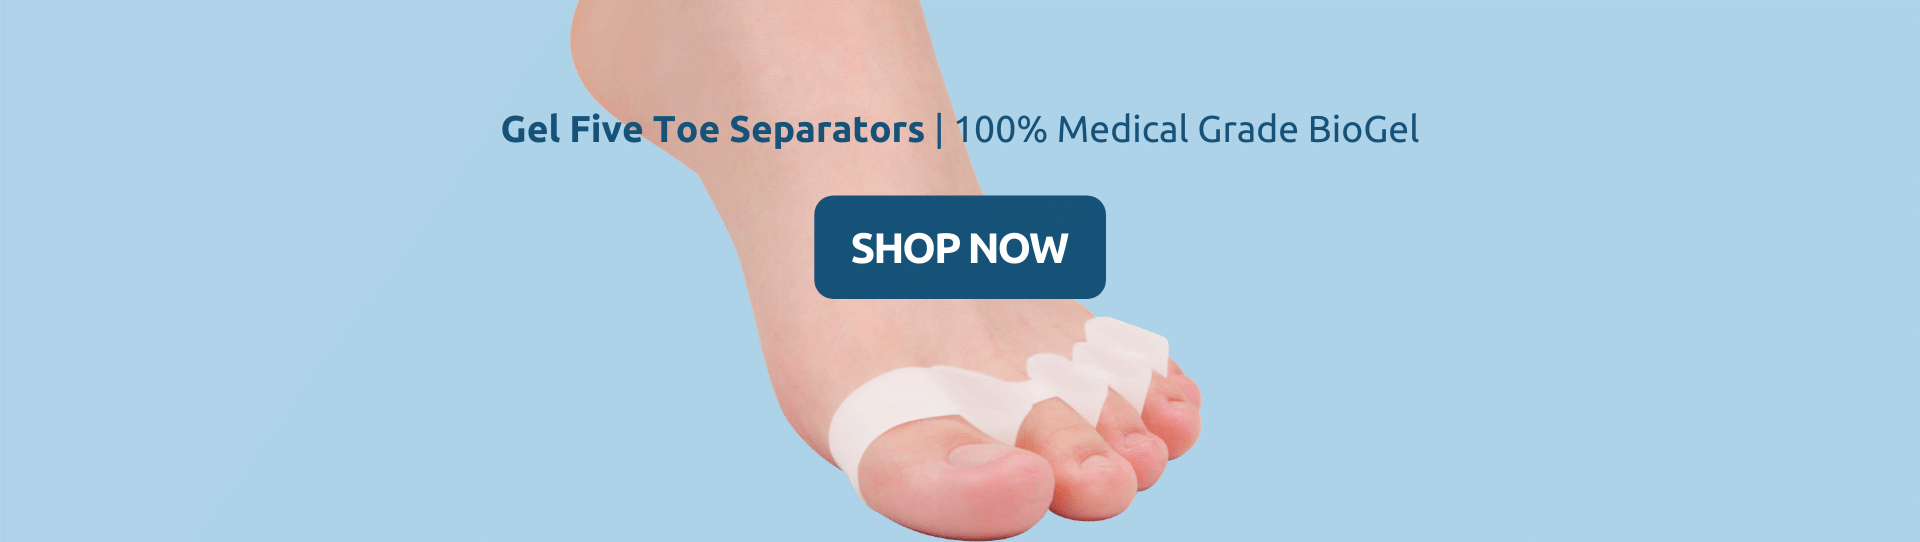 Buy Five Toe Separators